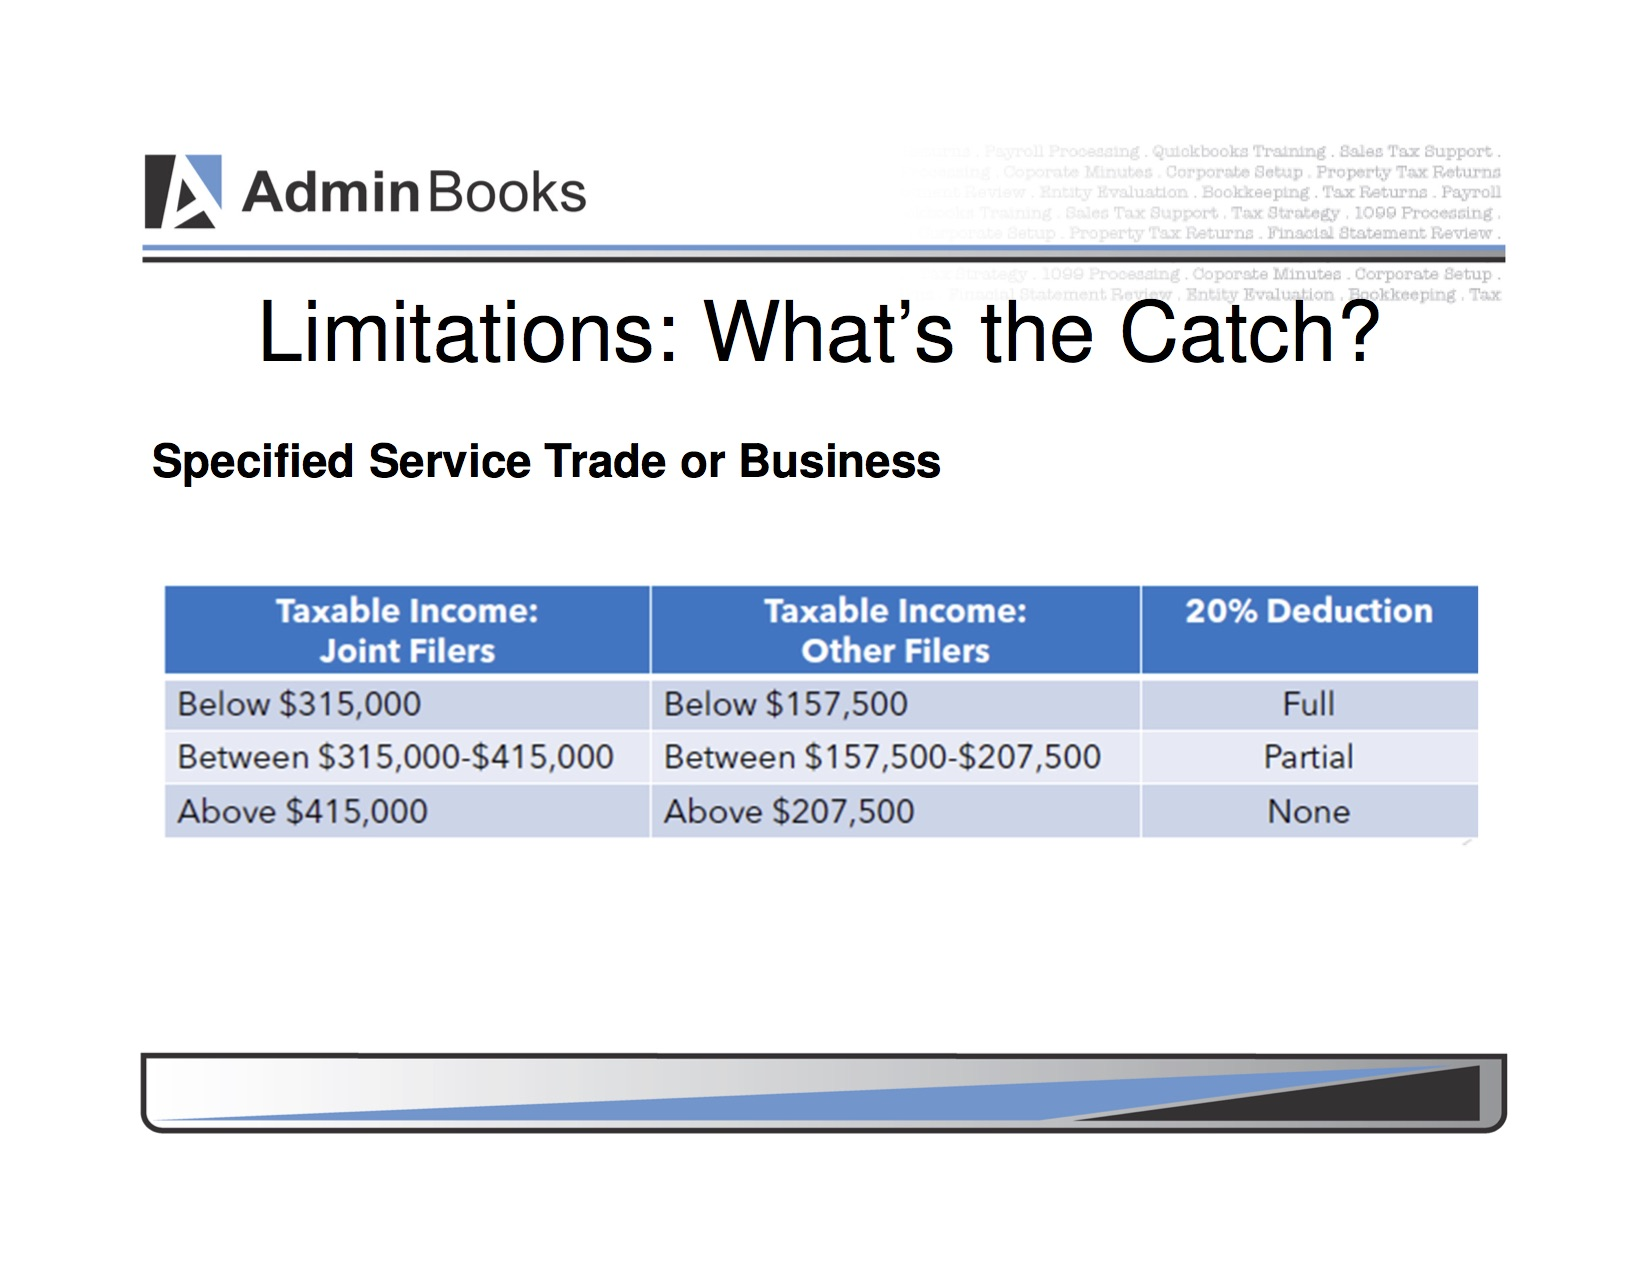 Specified Service Trades or Businesses